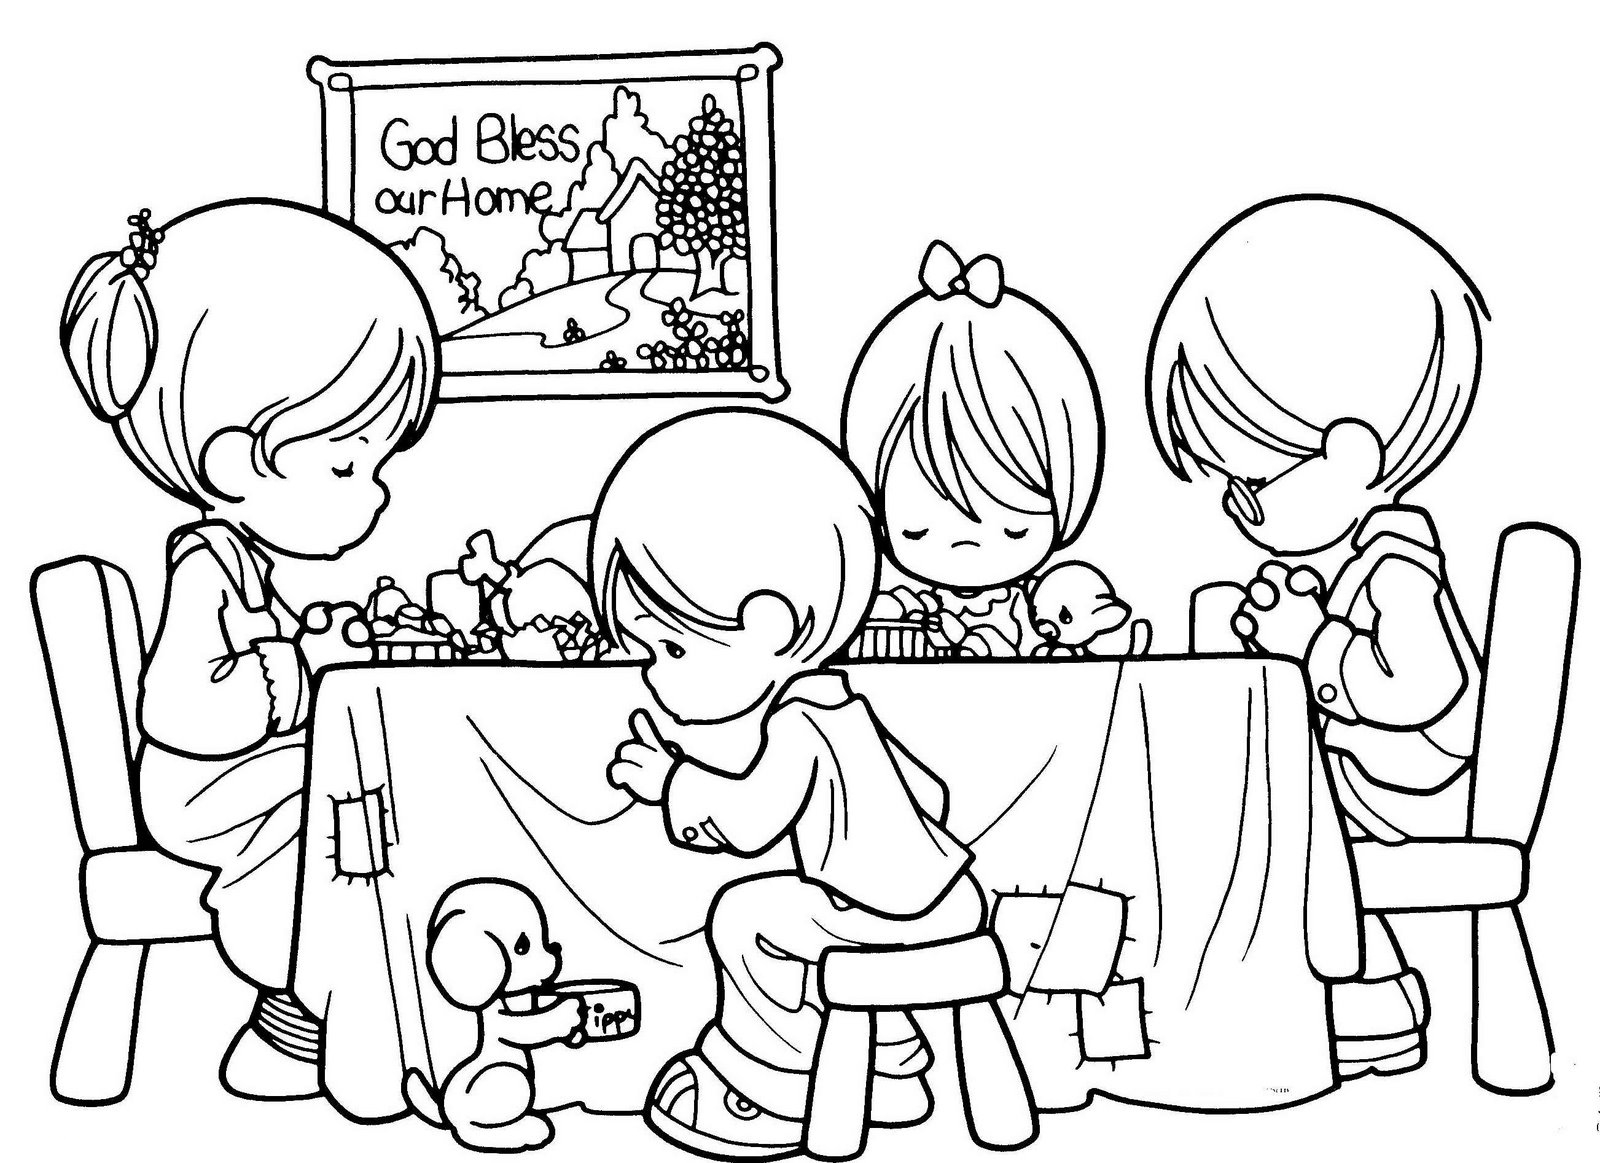 Free Printable Christian Coloring Pages For Kids Best Christian Coloring Pages Free